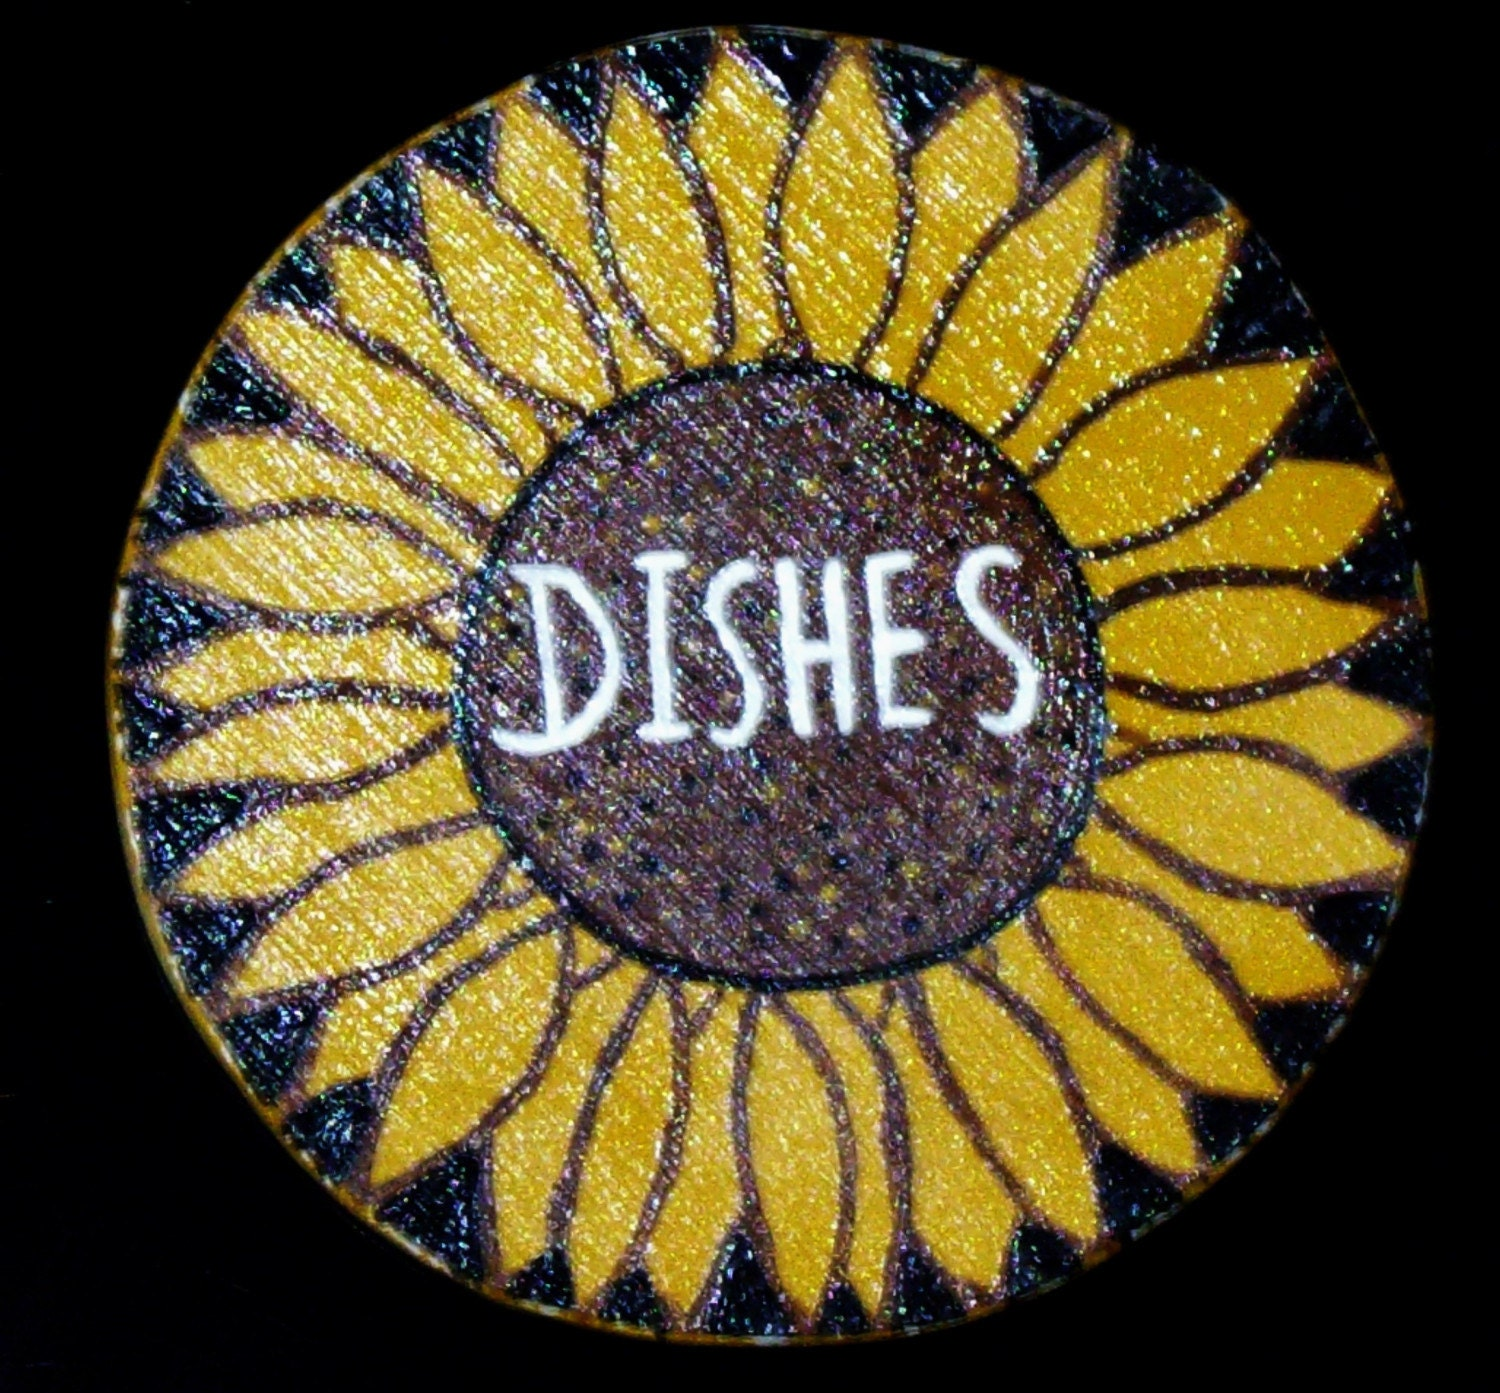 Dishwasher Clean Dirty Flip Sign Collage Butterflies handmade